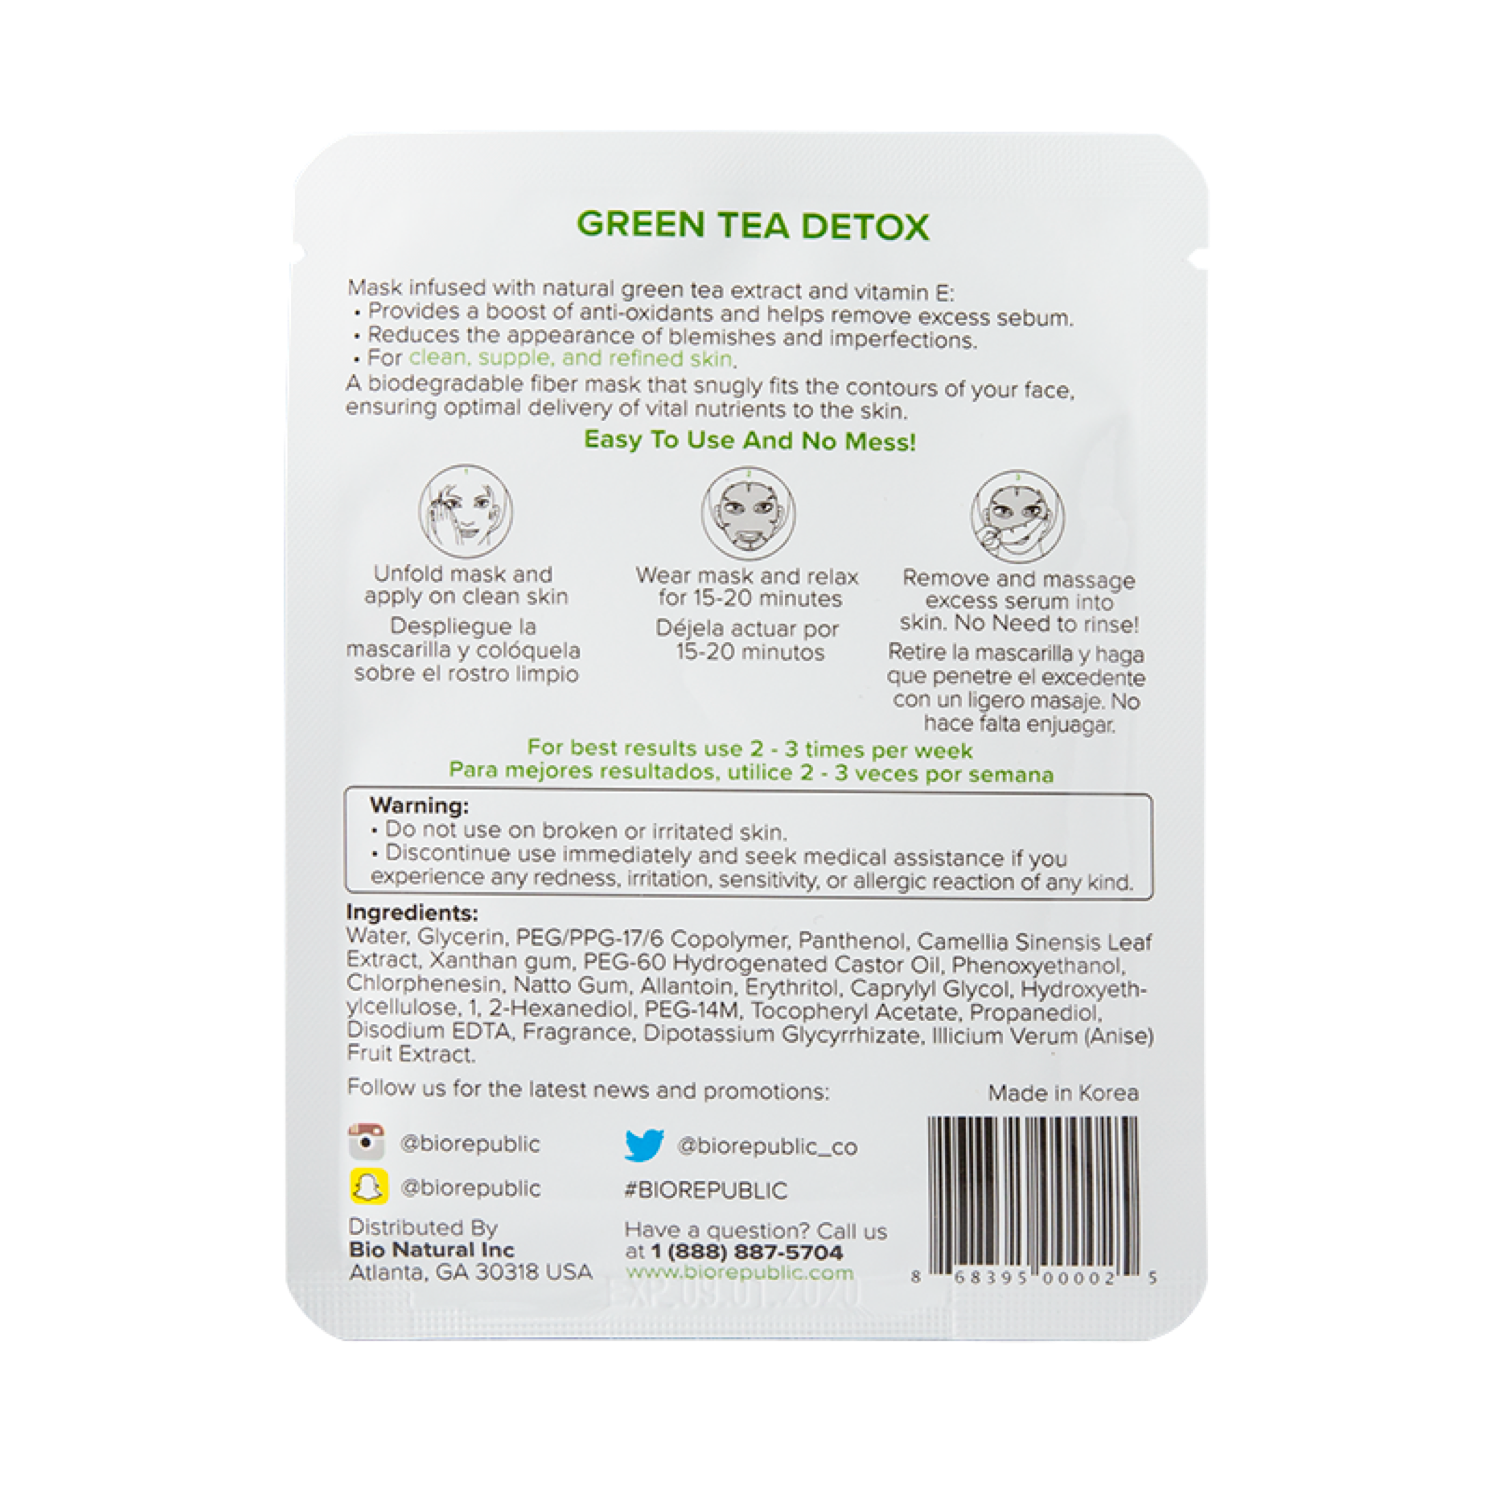 GREEN TEA DETOX PURIFYING FIBER MASK (MASCARILLA PARA ROSTRO)